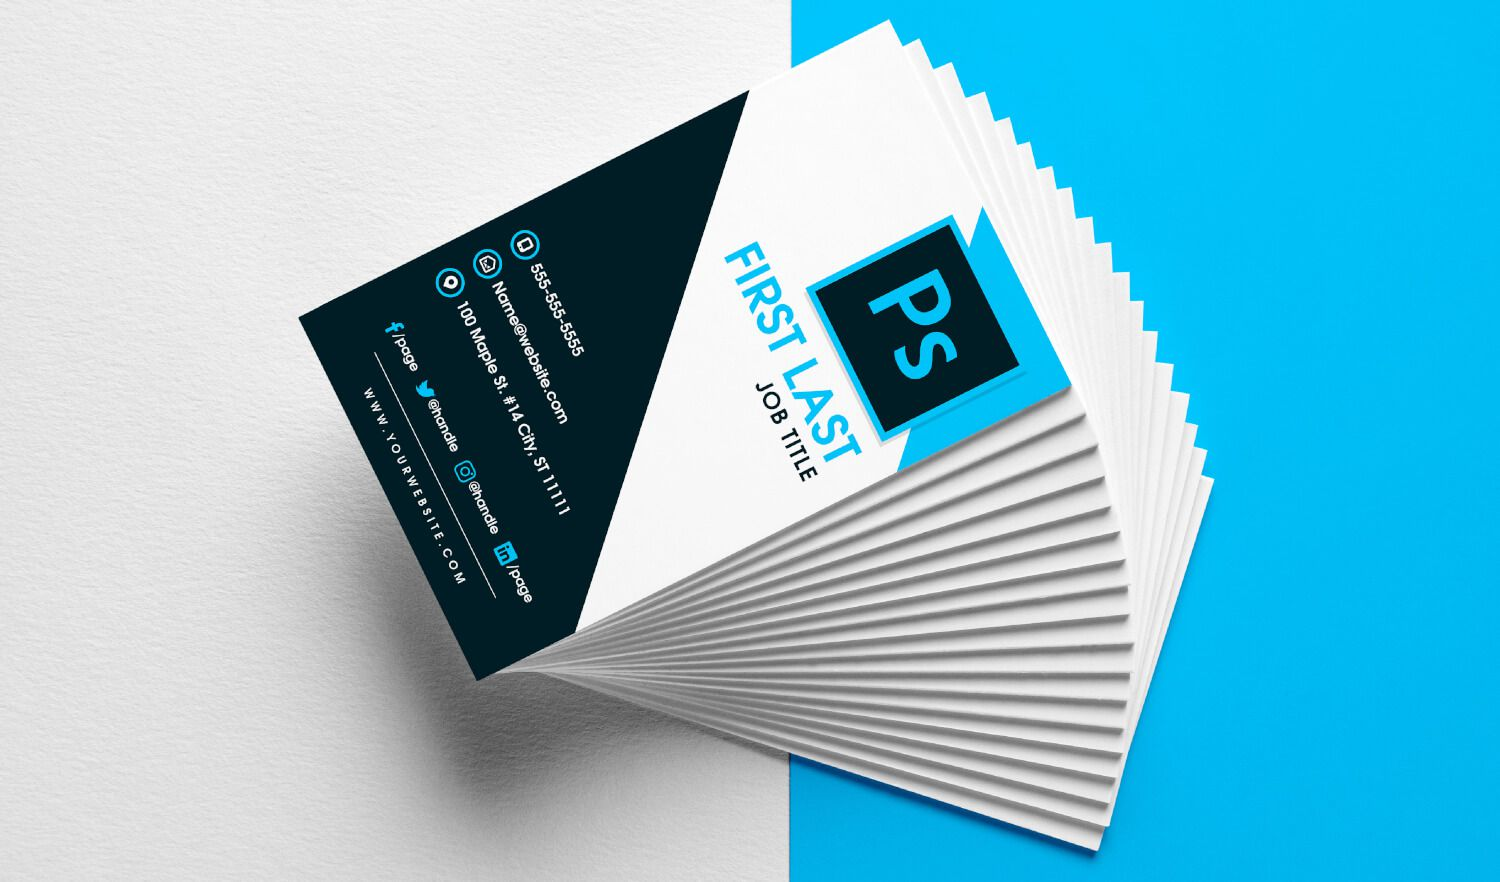 007 Fascinating Free Download Busines Card Template High Resolution  Templates Psd File M WordFull